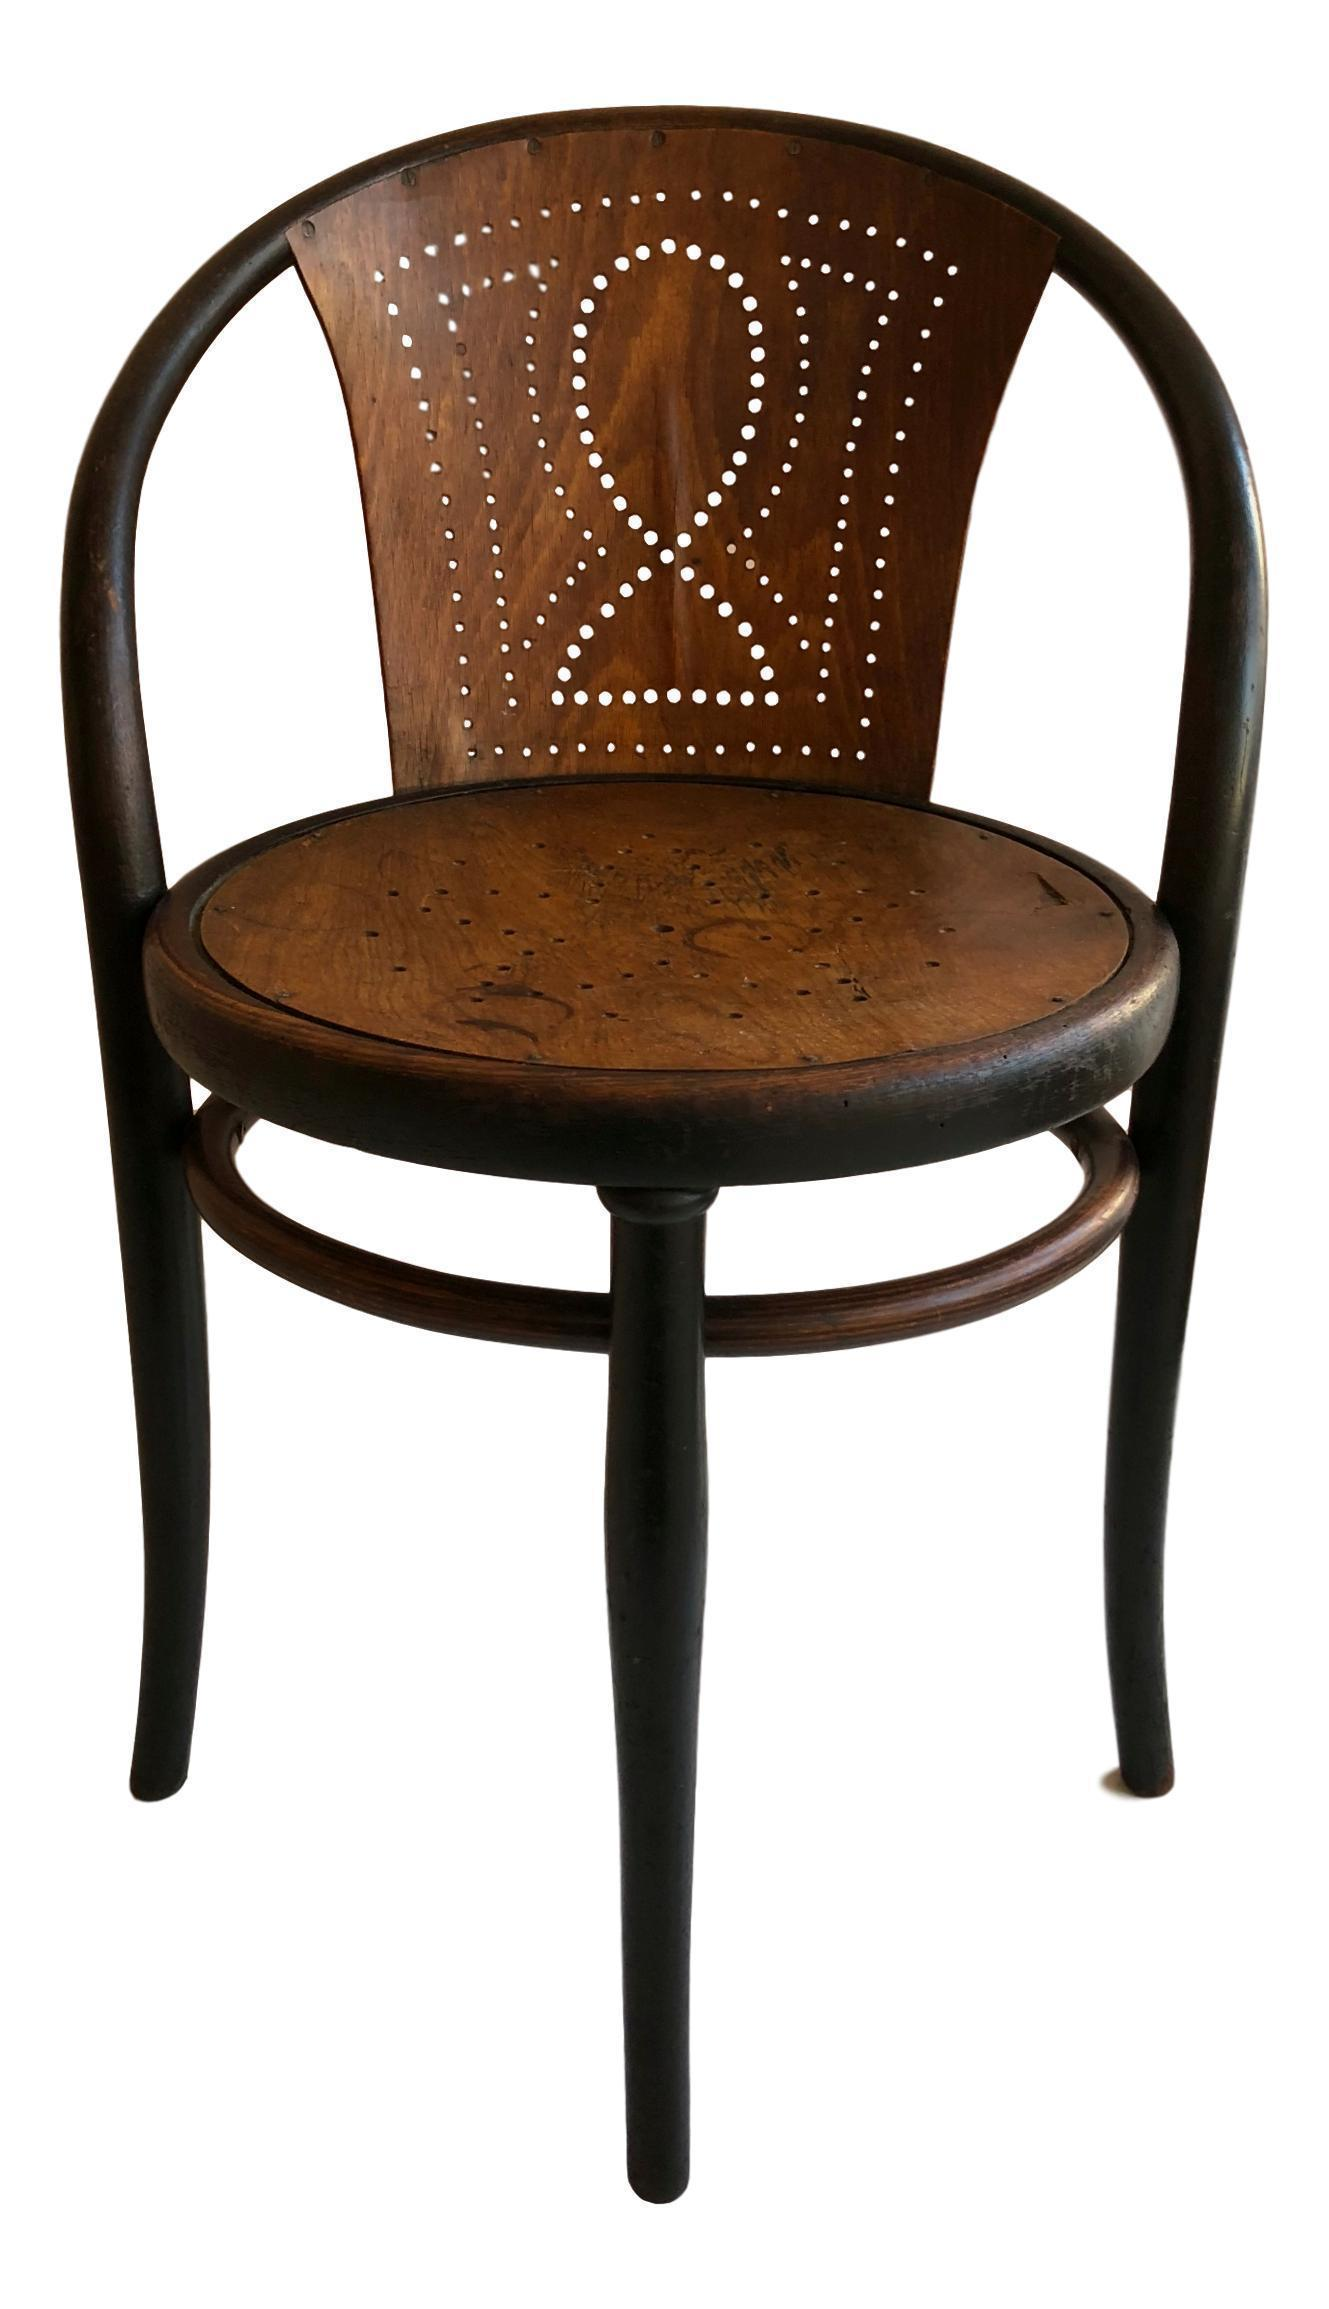 Thonet Michael Antique Model 47 Chair By Michael Thonet For Thonet